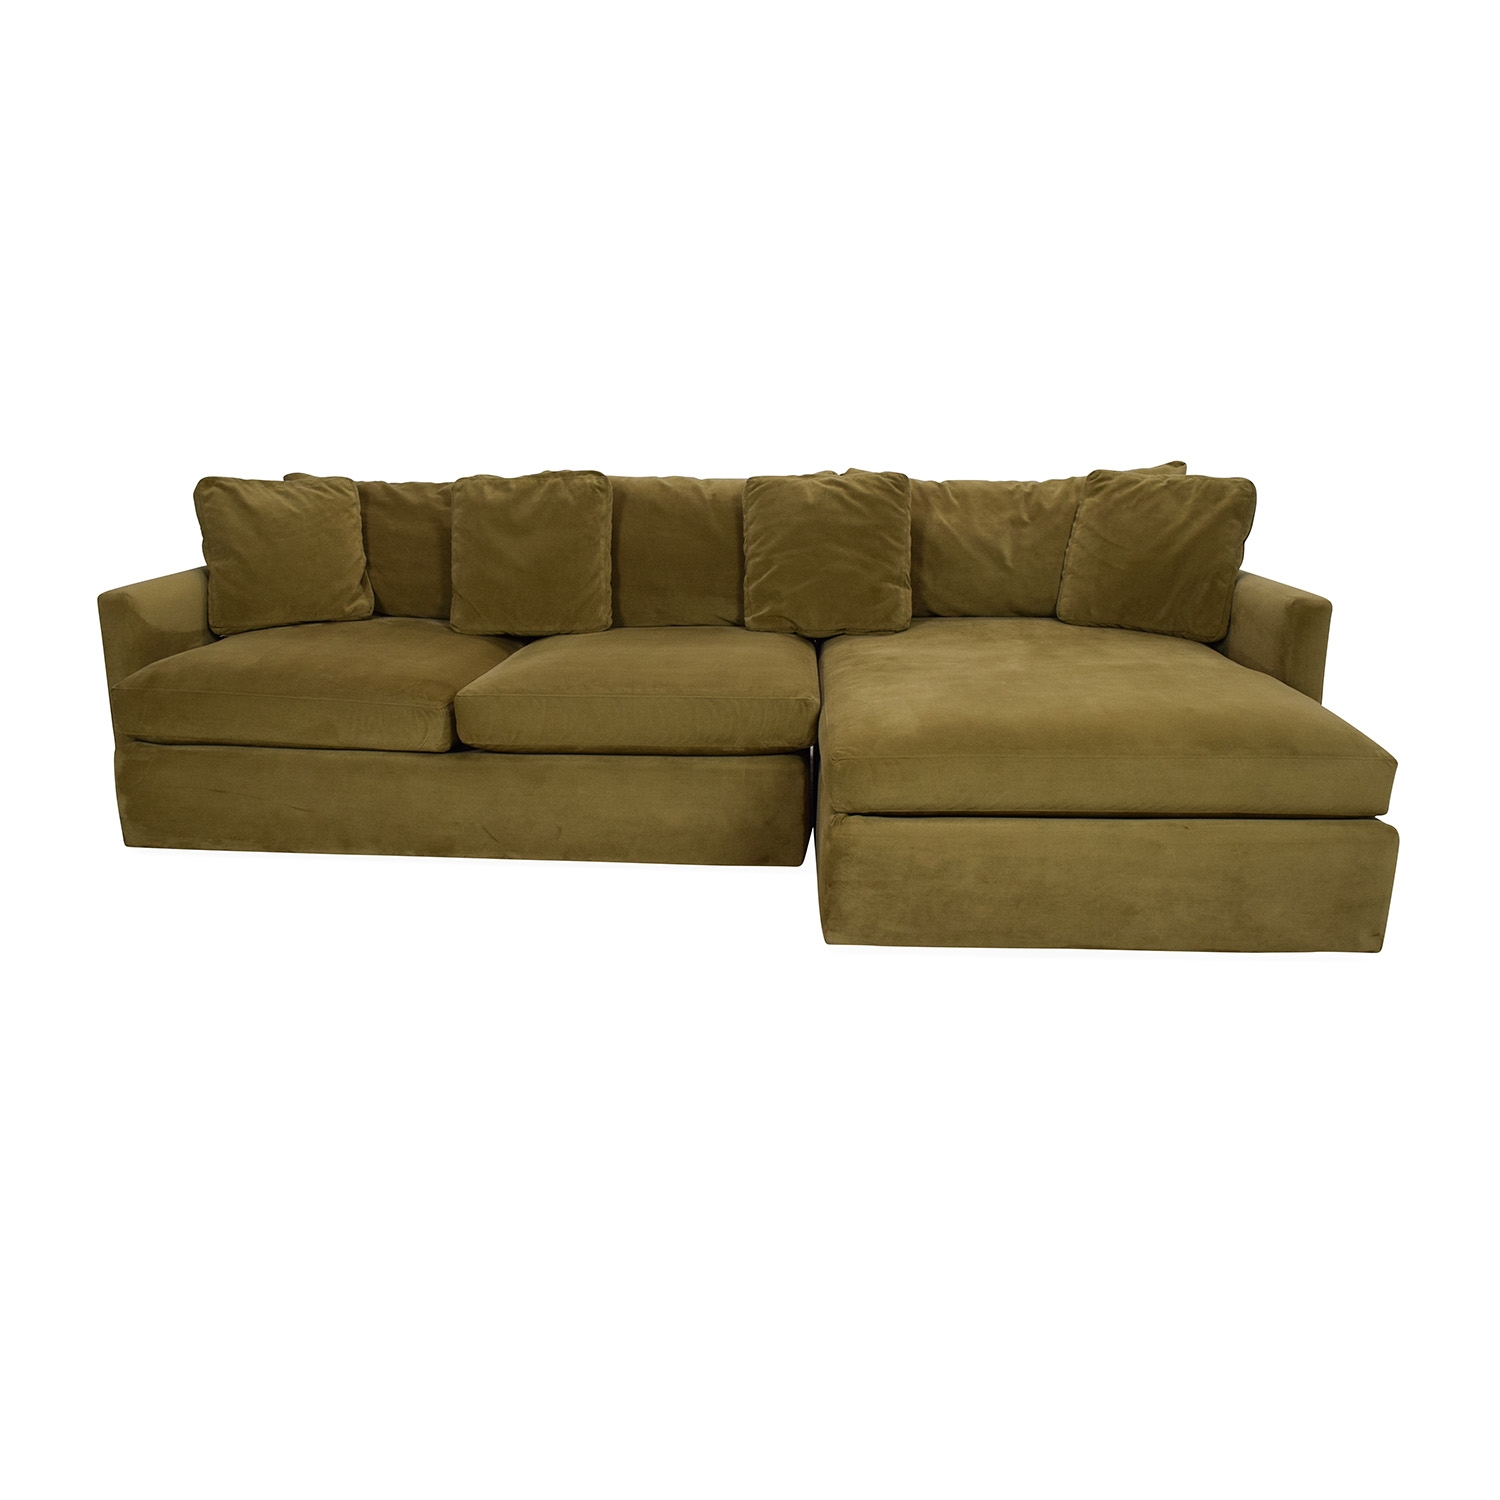 88 Off Hickory Chair Hickory Chair Foster L Shaped Beige With Crate And Barrel Sectional Sofas (#3 of 12)